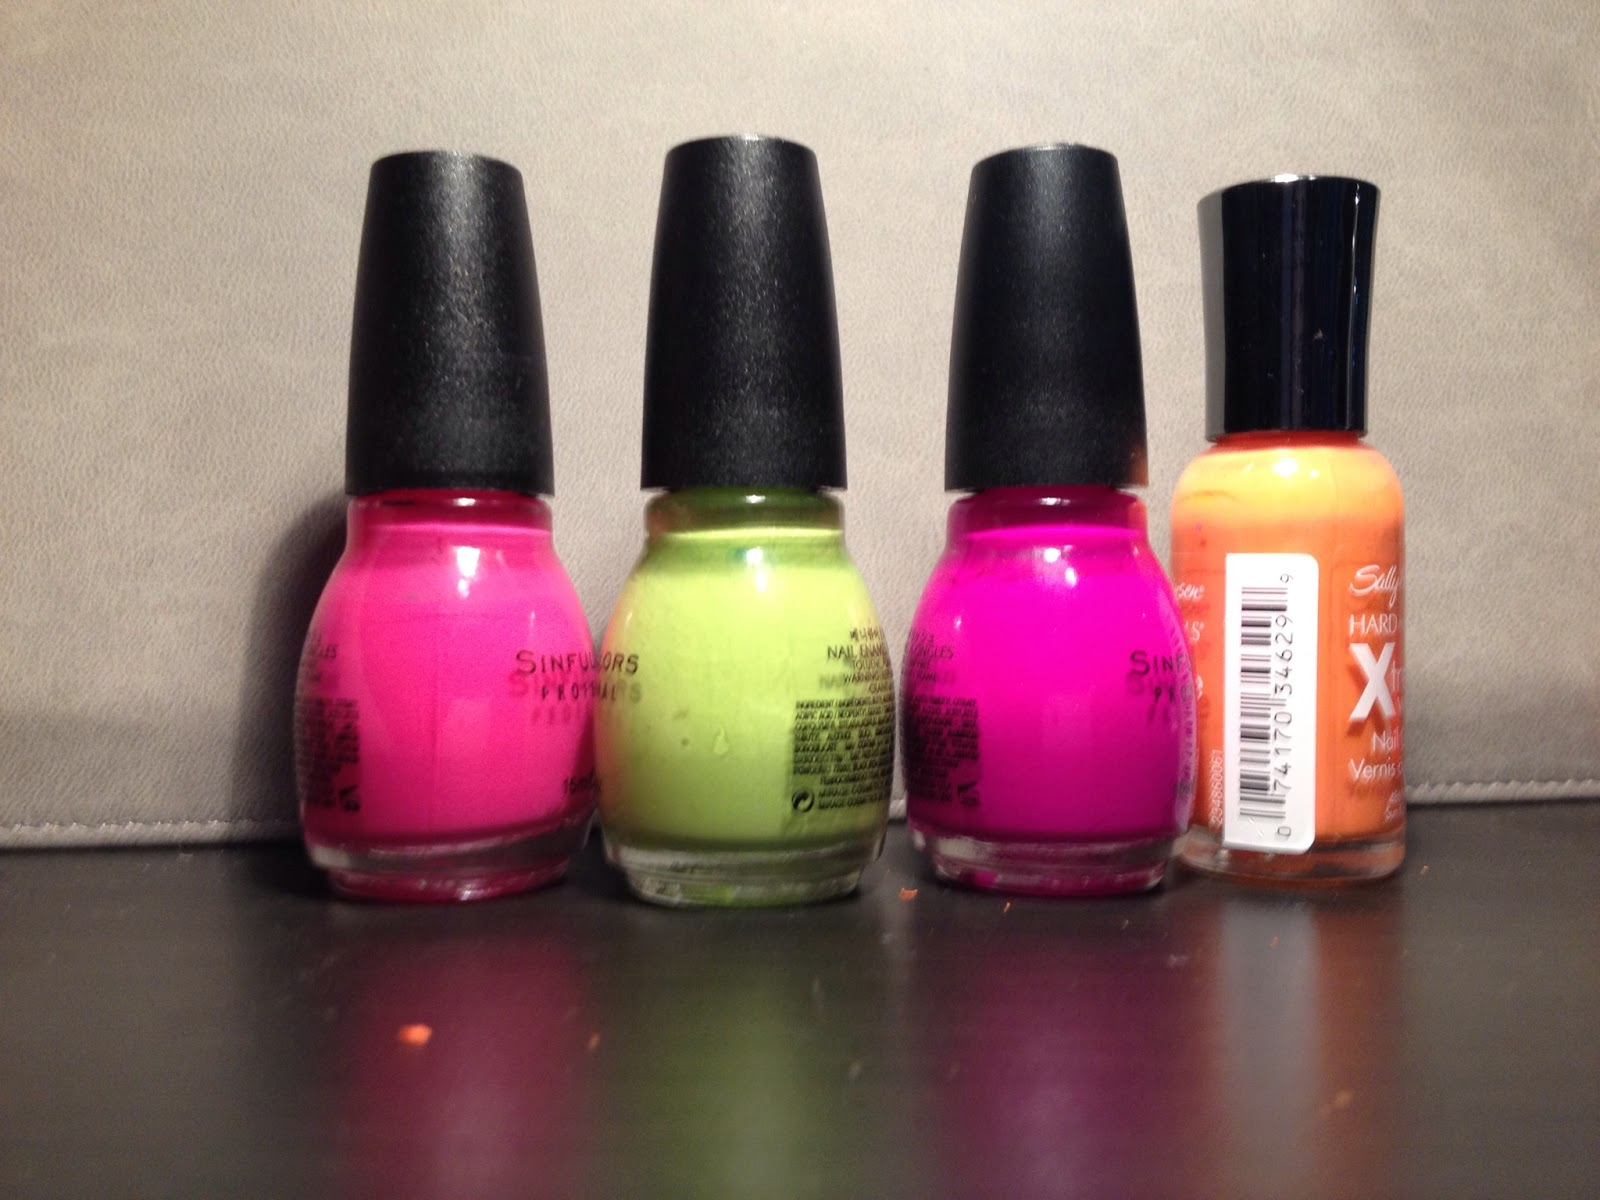 Favorite Nail Colors for Spring 2013: Pastels and Neons | Cute Nail ...